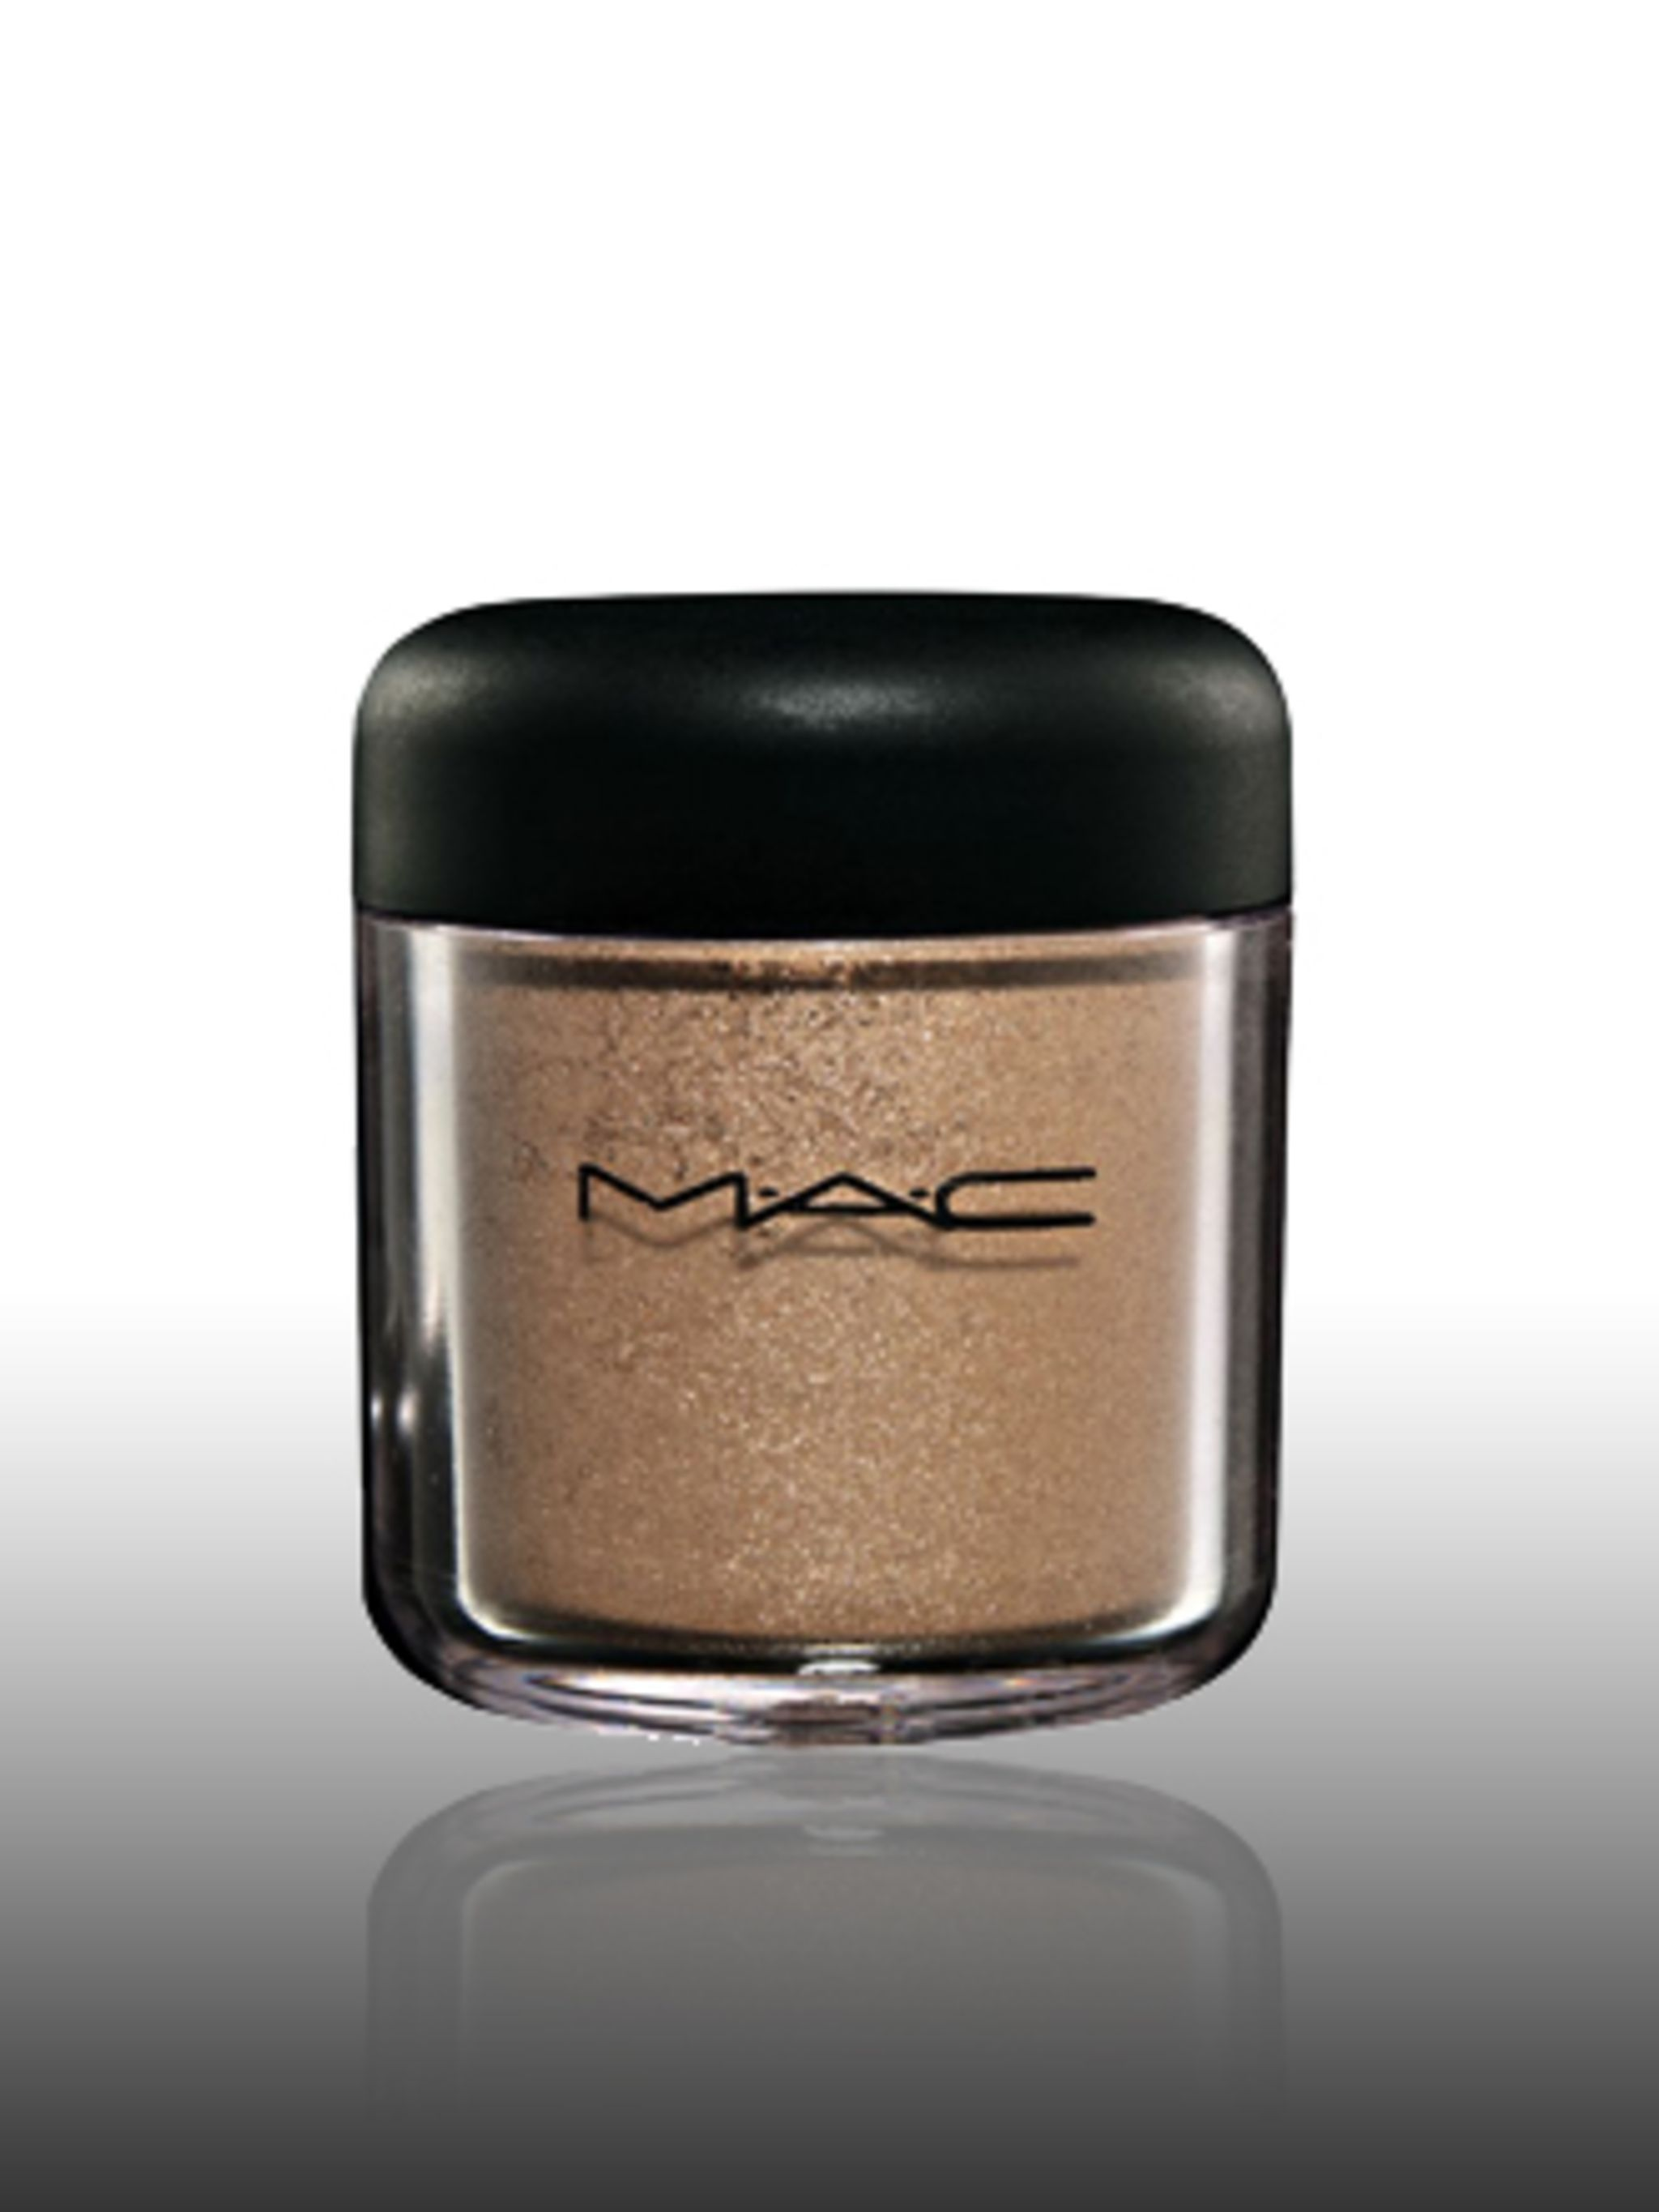 "<p>Pigment in Over Rich, £15 by <a href=""http://www.maccosmetics.co.uk/"">Mac</a> </p><p>Bronze, copper and gold are the look du jour for eyes this season. This is a good way to update your smoky eye look.</p>"